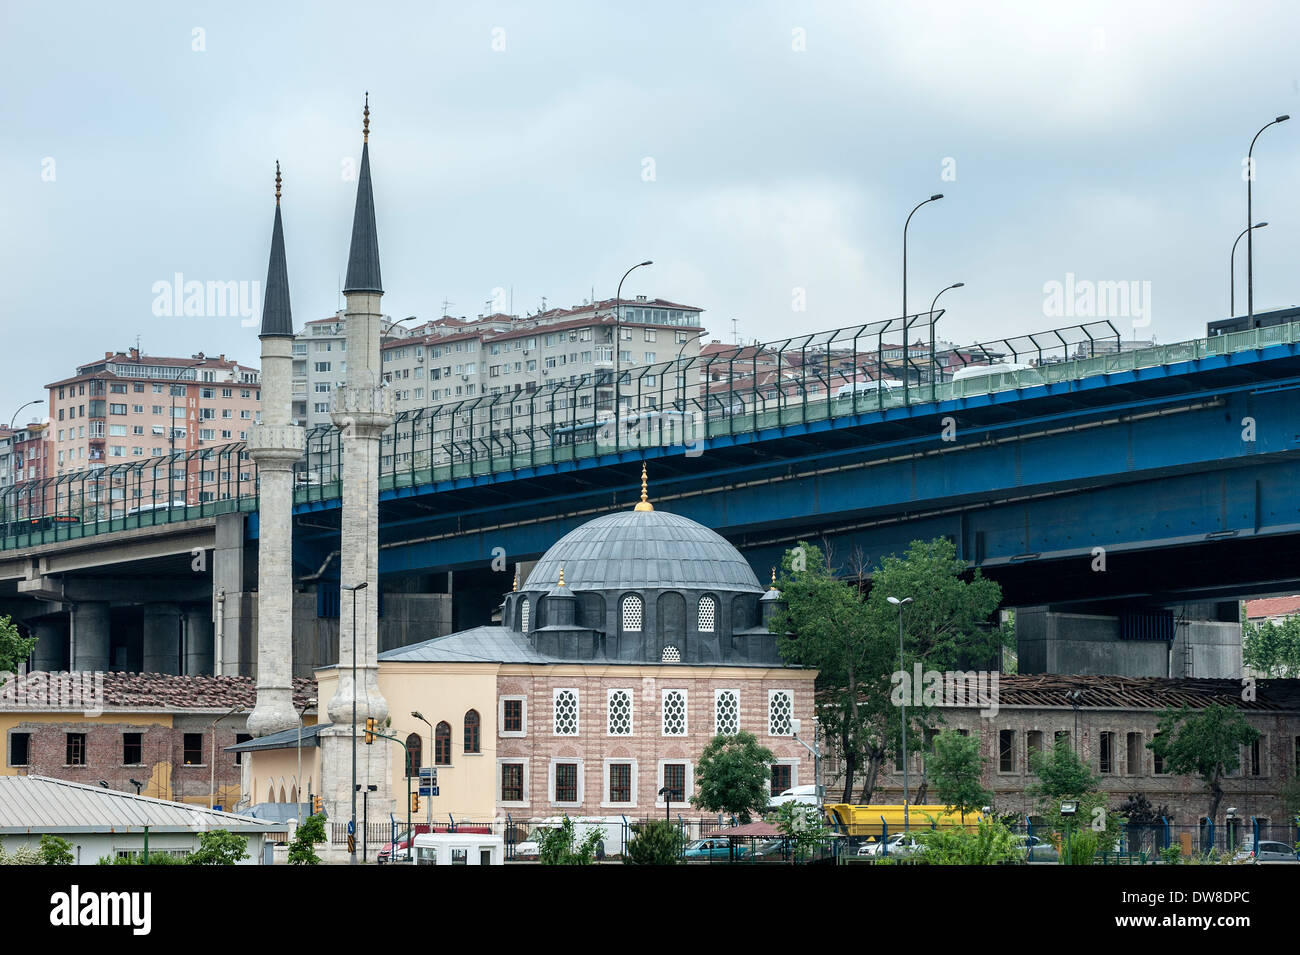 Along the Golden Horn, Istanbul, Turkey - Stock Image